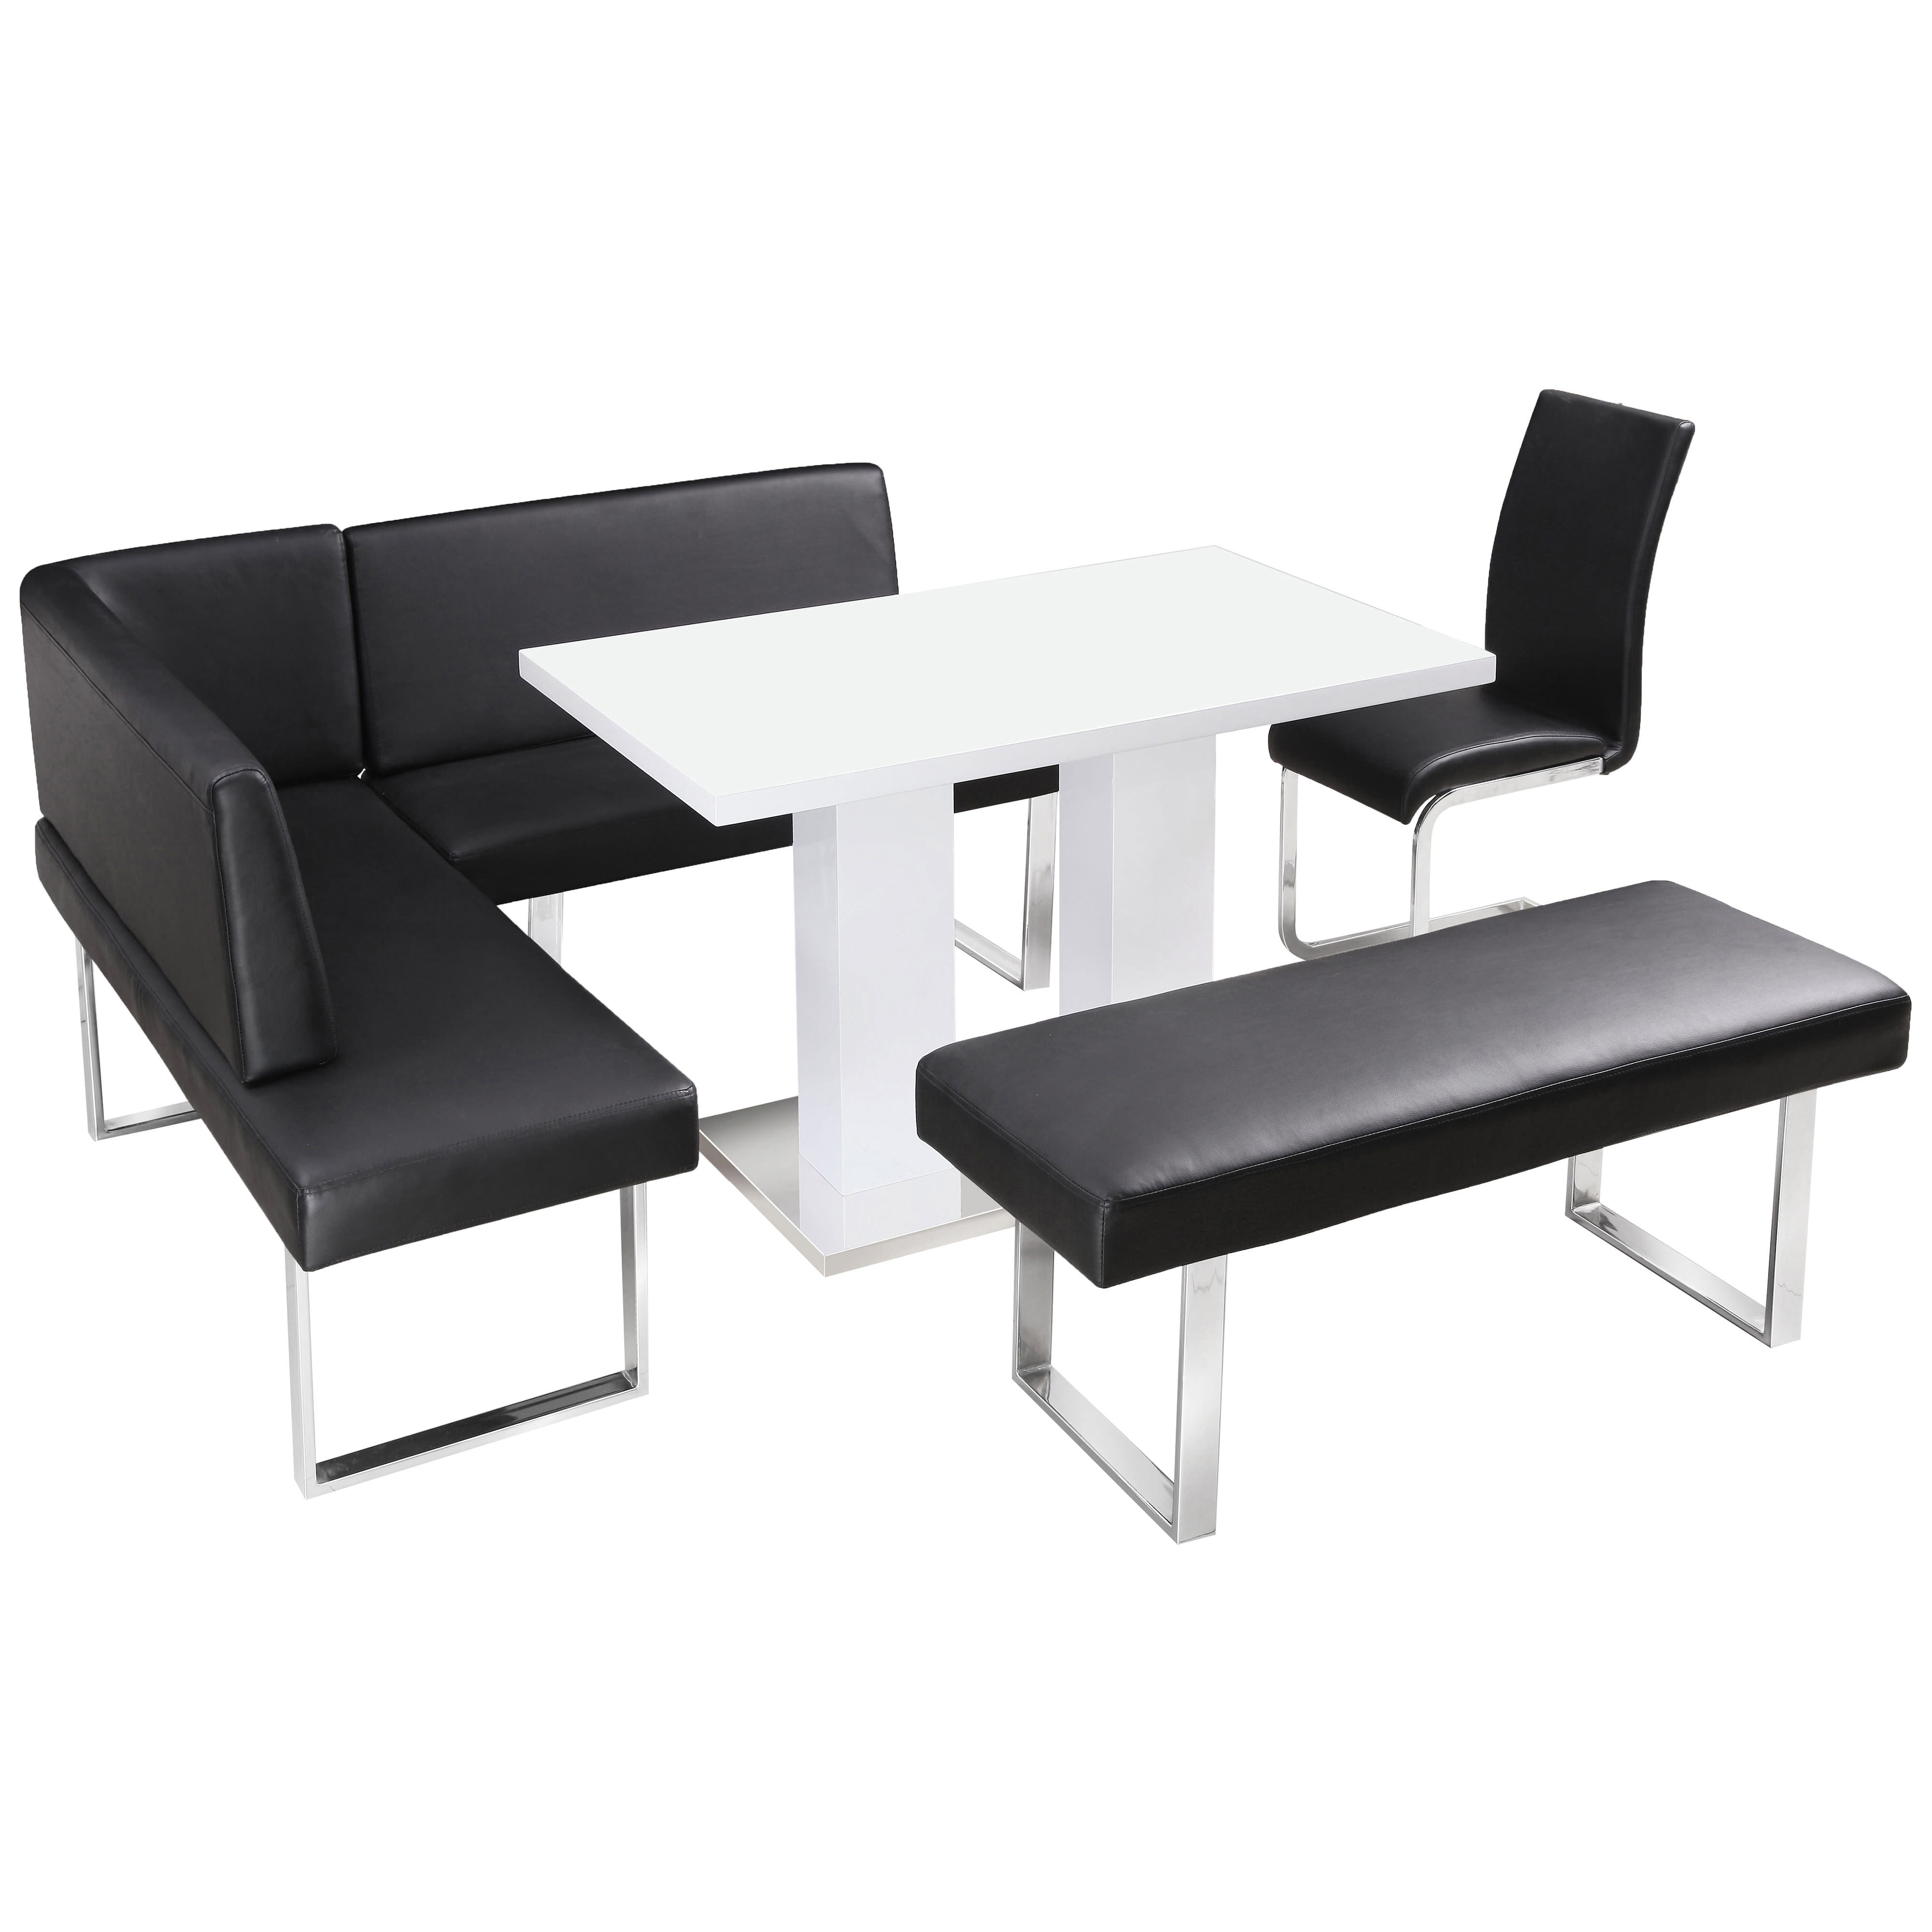 Popular High Gloss Dining Table And Chair Set With Corner Bench & 1 Seat Intended For Black High Gloss Dining Chairs (View 15 of 25)